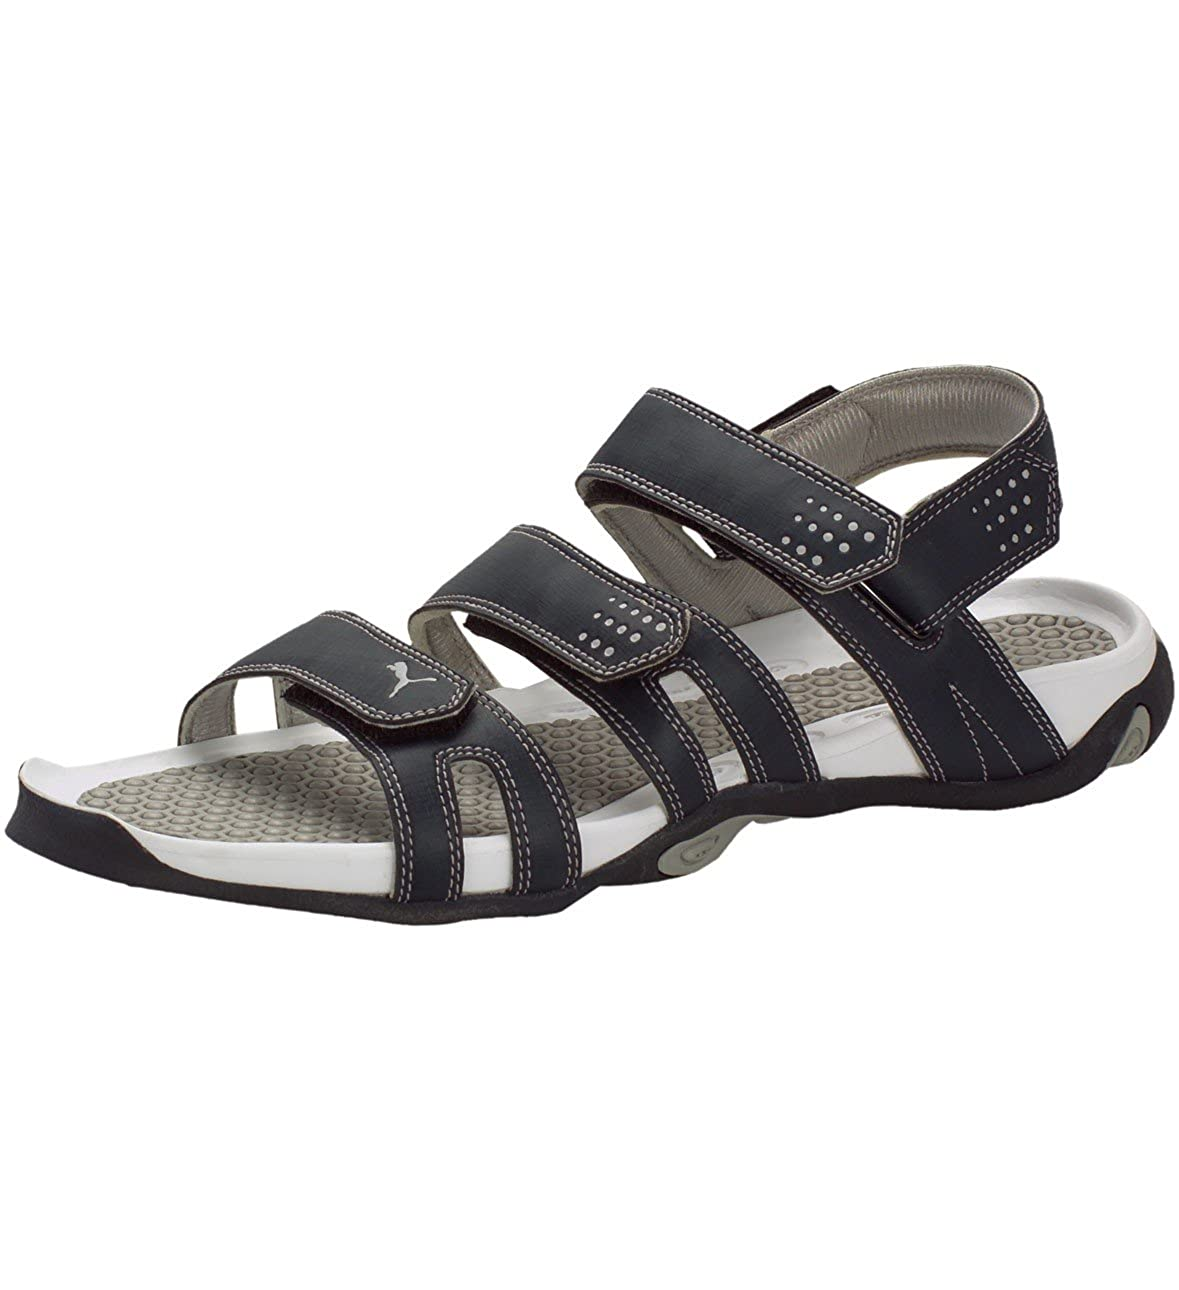 a1dd8fdbb043 Puma Men s Insignia Blue and Light Grey Sandals and Floaters - 9 UK India  (43 EU)  Amazon.in  Shoes   Handbags